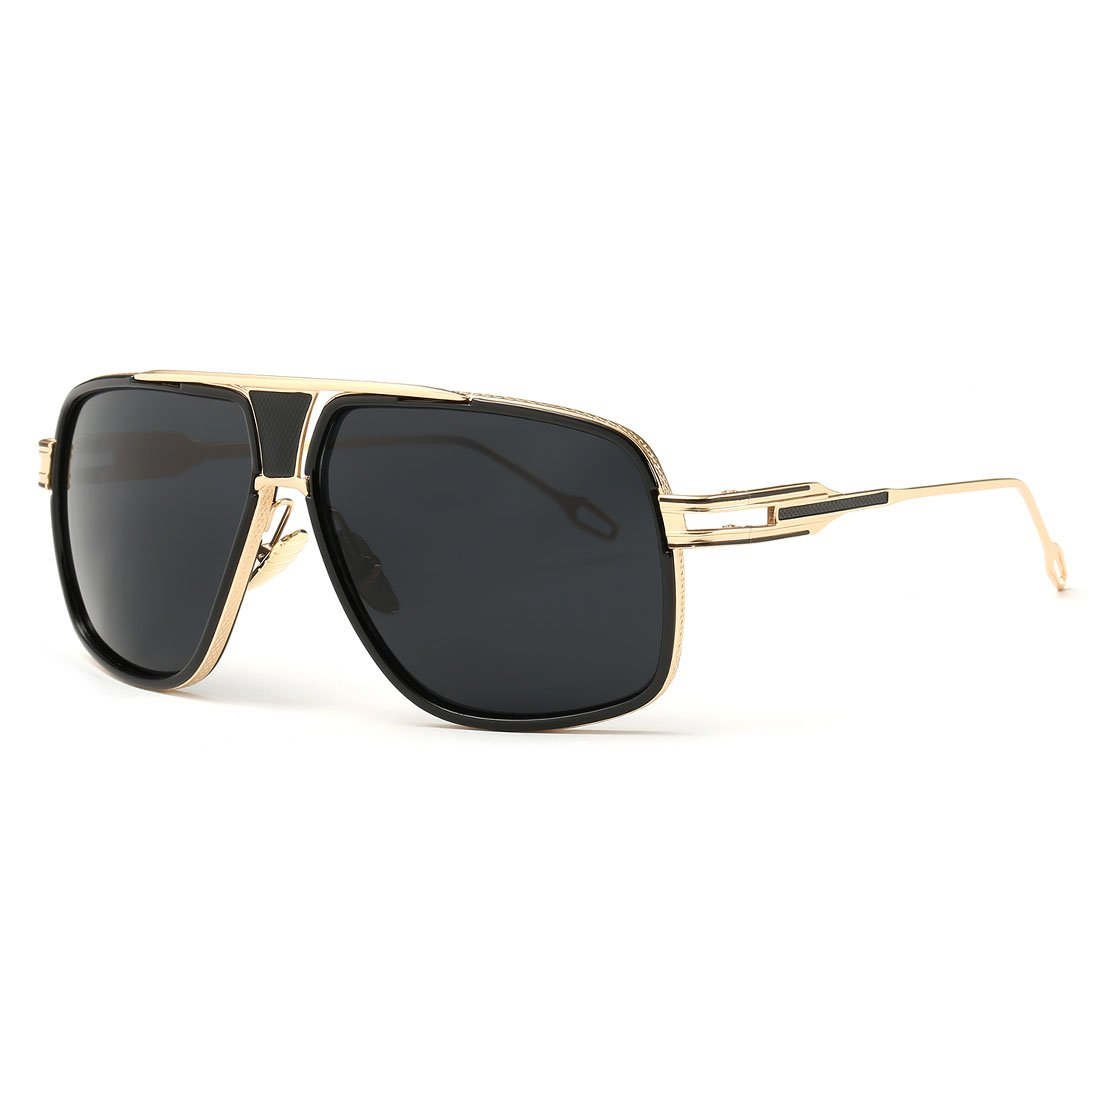 a34d023805b Amazon.com  AEVOGUE Sunglasses For Men Goggle Alloy Frame Brand Designer  AE0336 (Gold Black